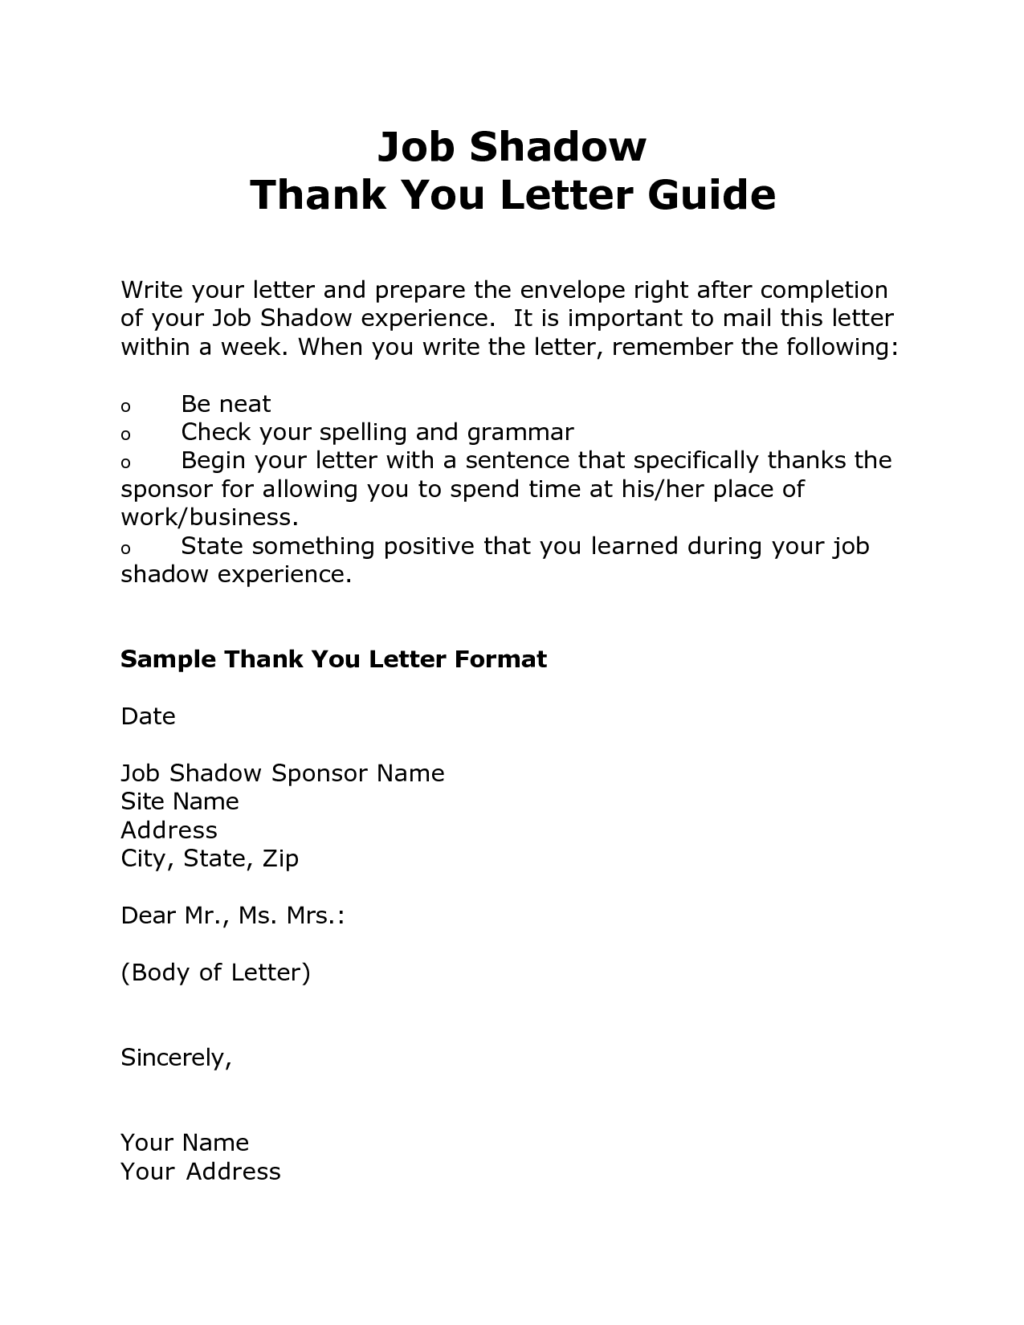 Sample letter for job opportunity thank you cover templates shadow sample letter for job opportunity thank you cover templates shadow guide aljukfo Gallery